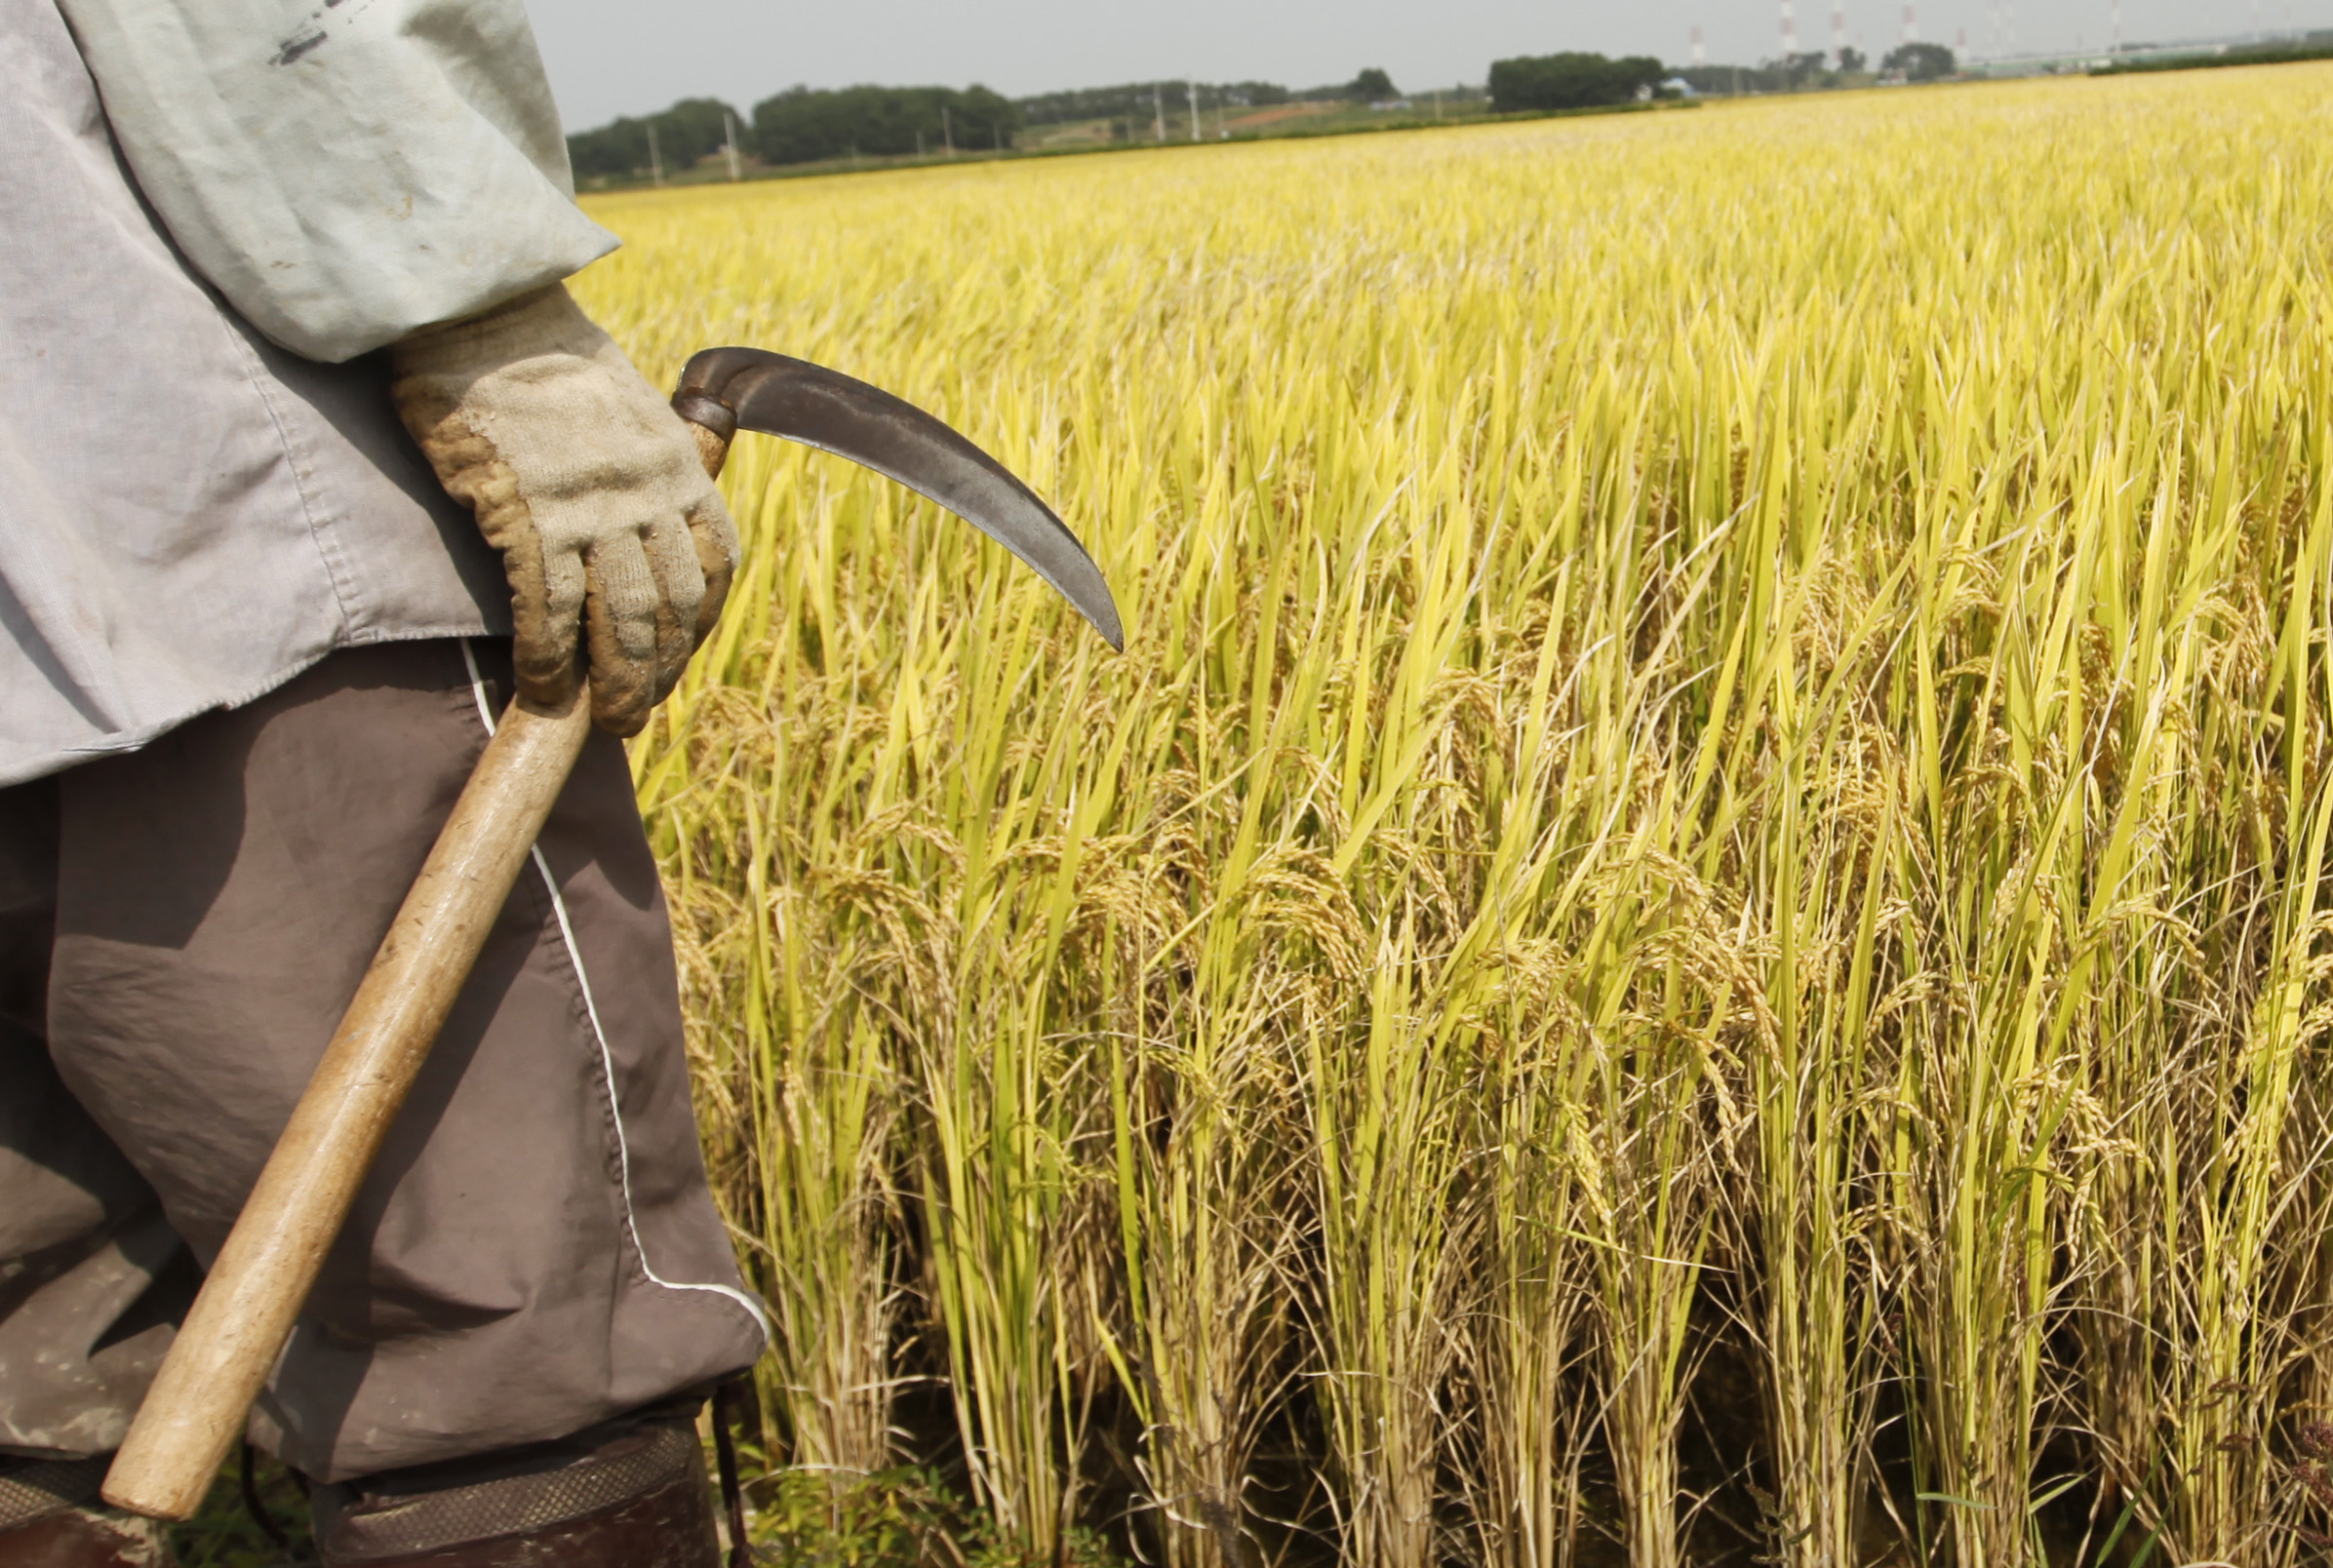 FILE - A farmer holds a sickle on a rice field in Gimje, south of Seoul, Sept. 22, 2009. When Cambodian workers some to South Korea for employment, they can earn $1,200-$1,300 a month in agricultural jobs.